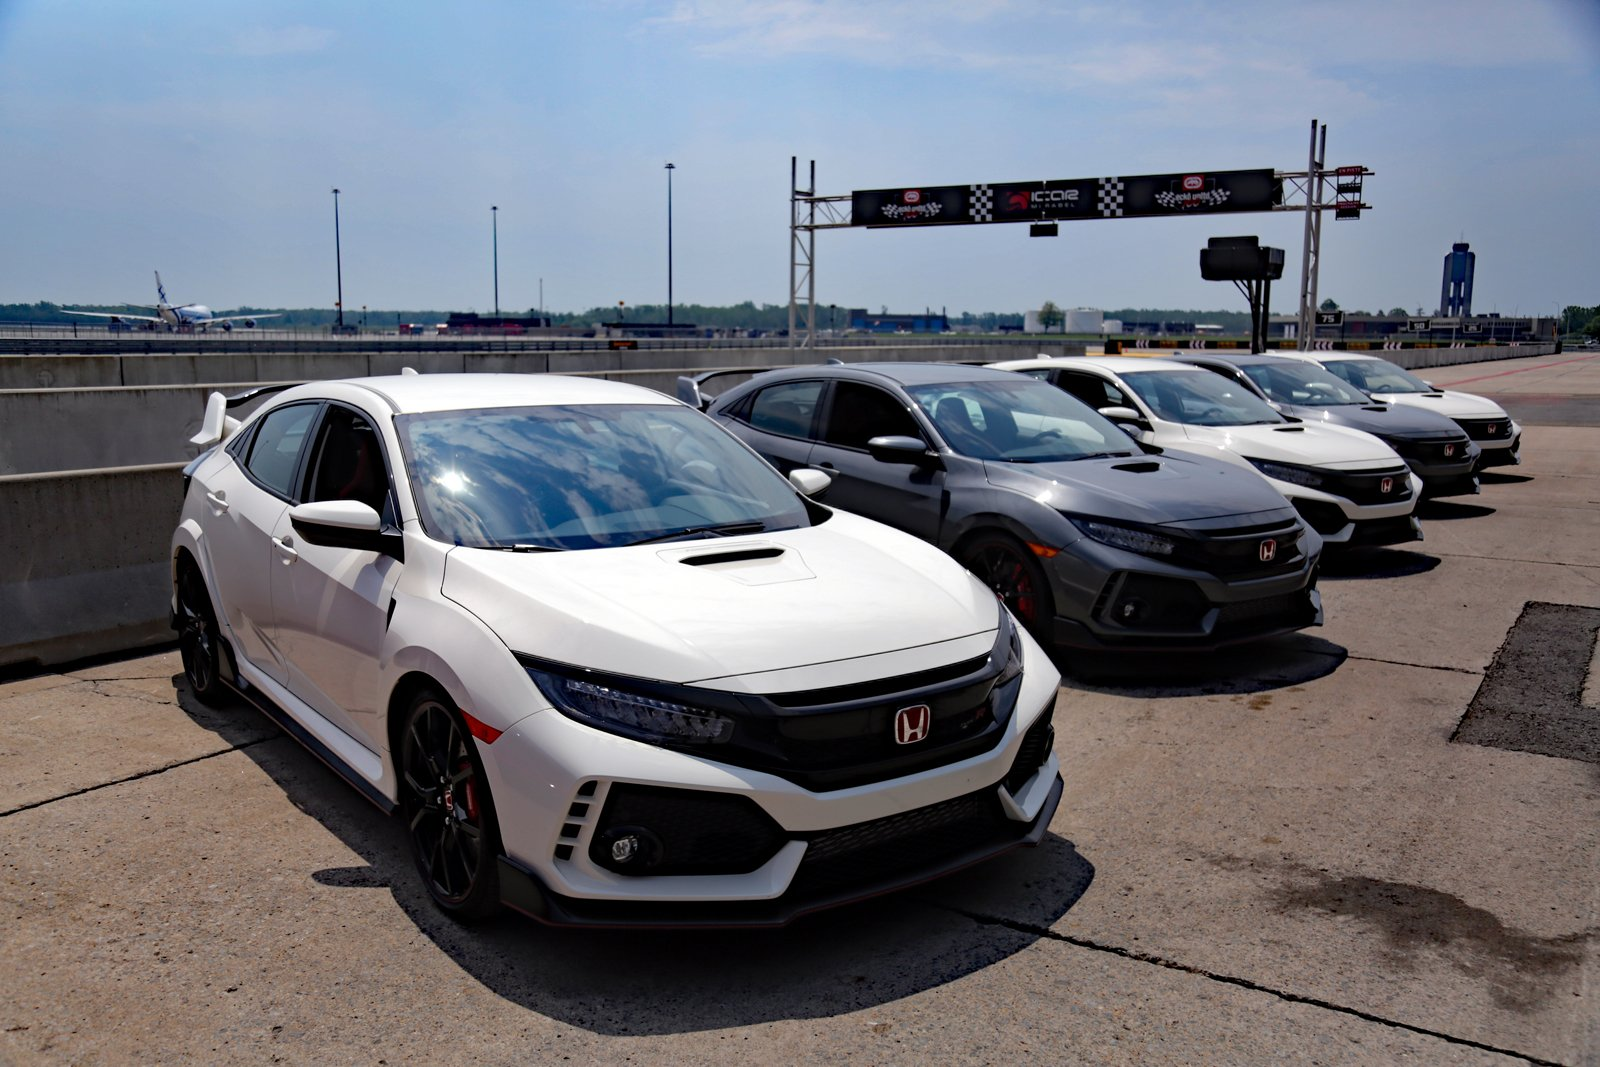 2017 Honda Civic Type R Colpitts 1600x1067 001